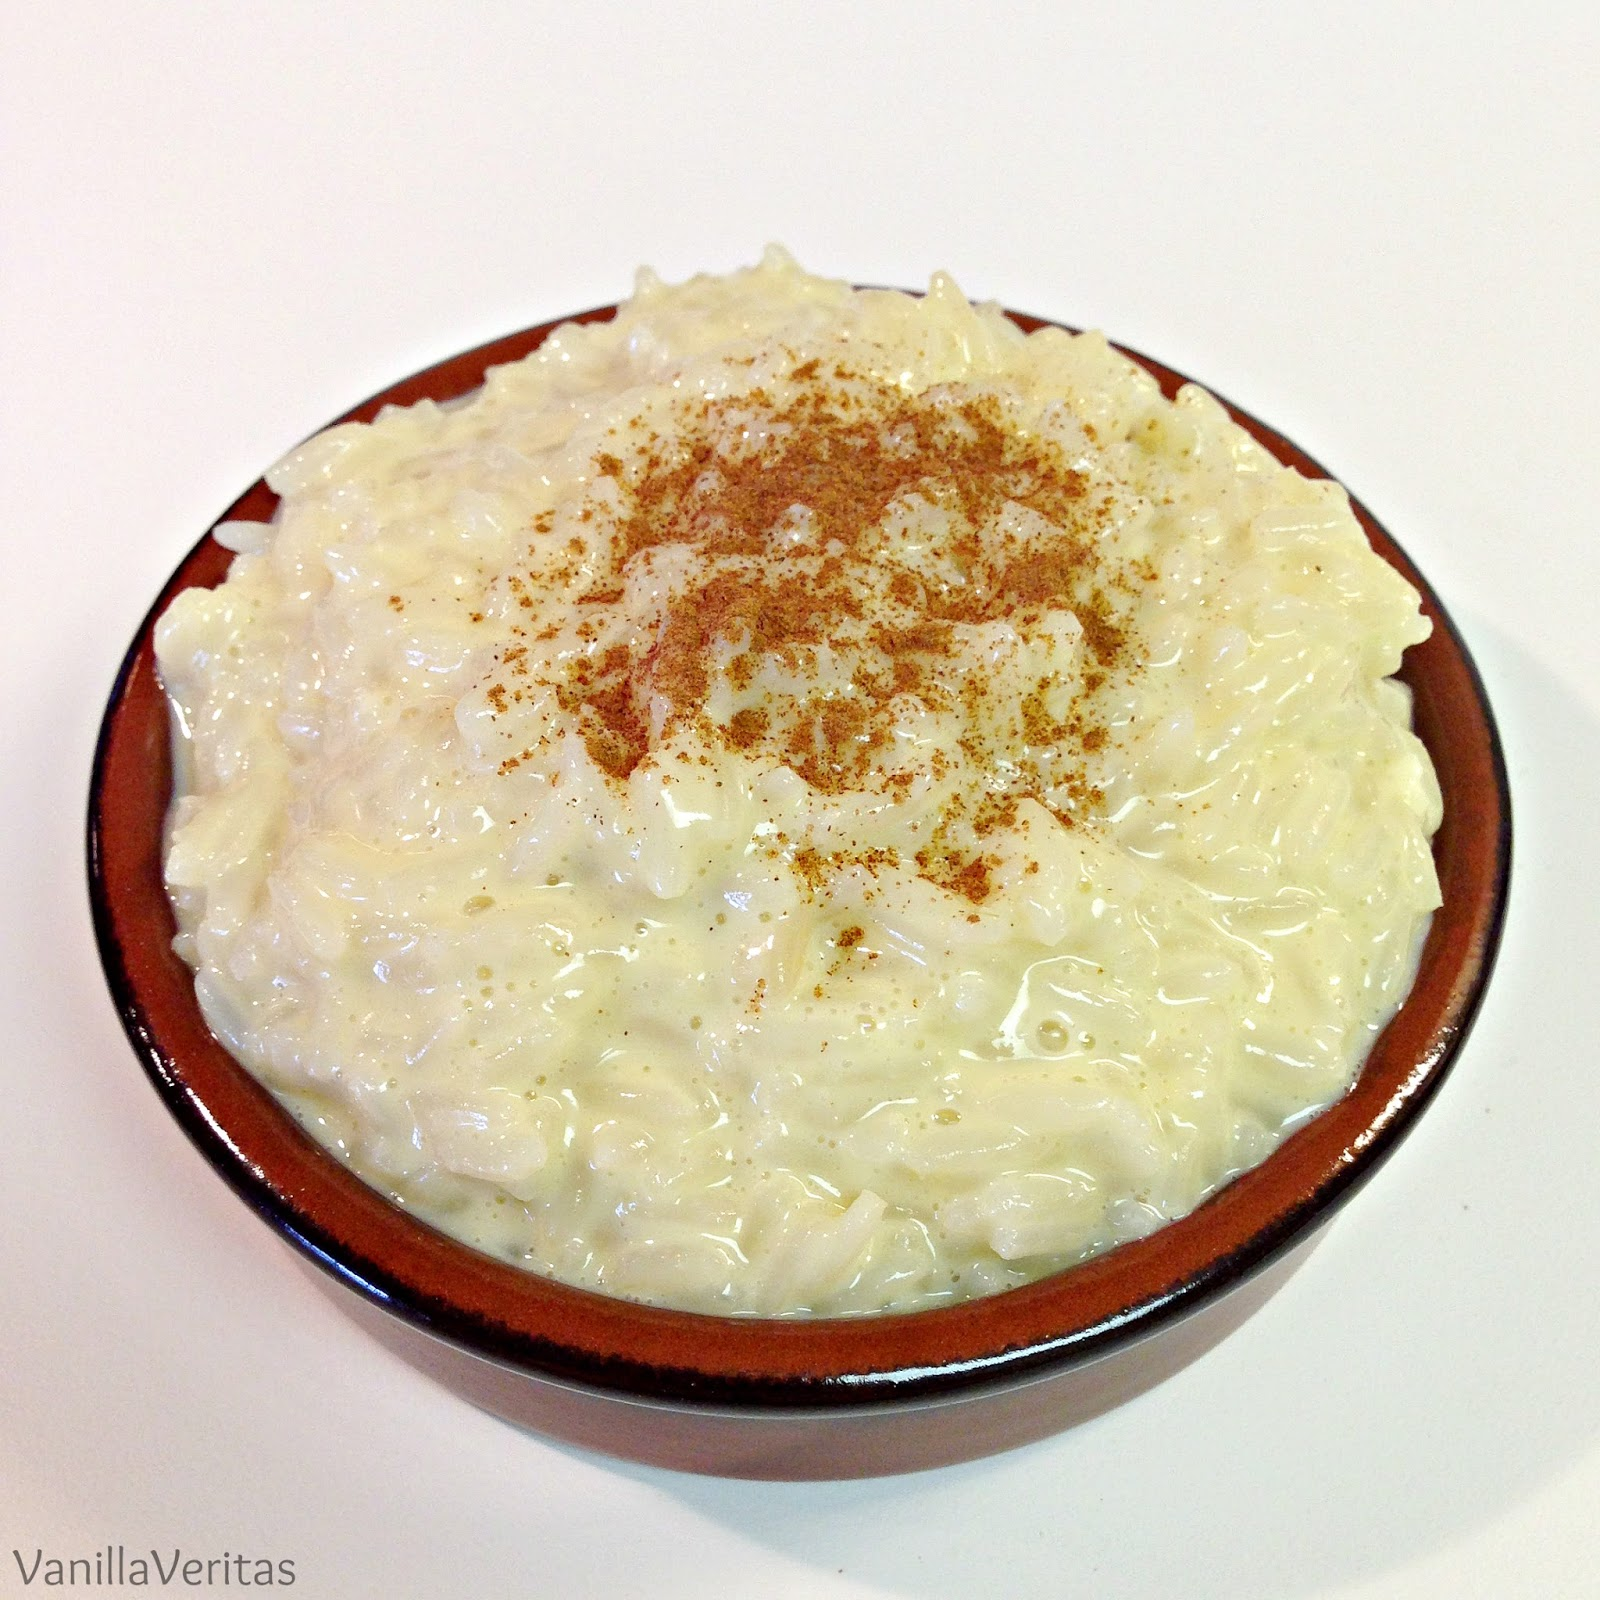 rice pudding | old-fashioned | creamy rice | vanilla pudding | old fashion | dessert | easy rice pudding | creamy rice pudding | homemade pudding | vegan rice pudding | healthy rice pudding | warm dessert | old fashioned | old fashioned rice pudding